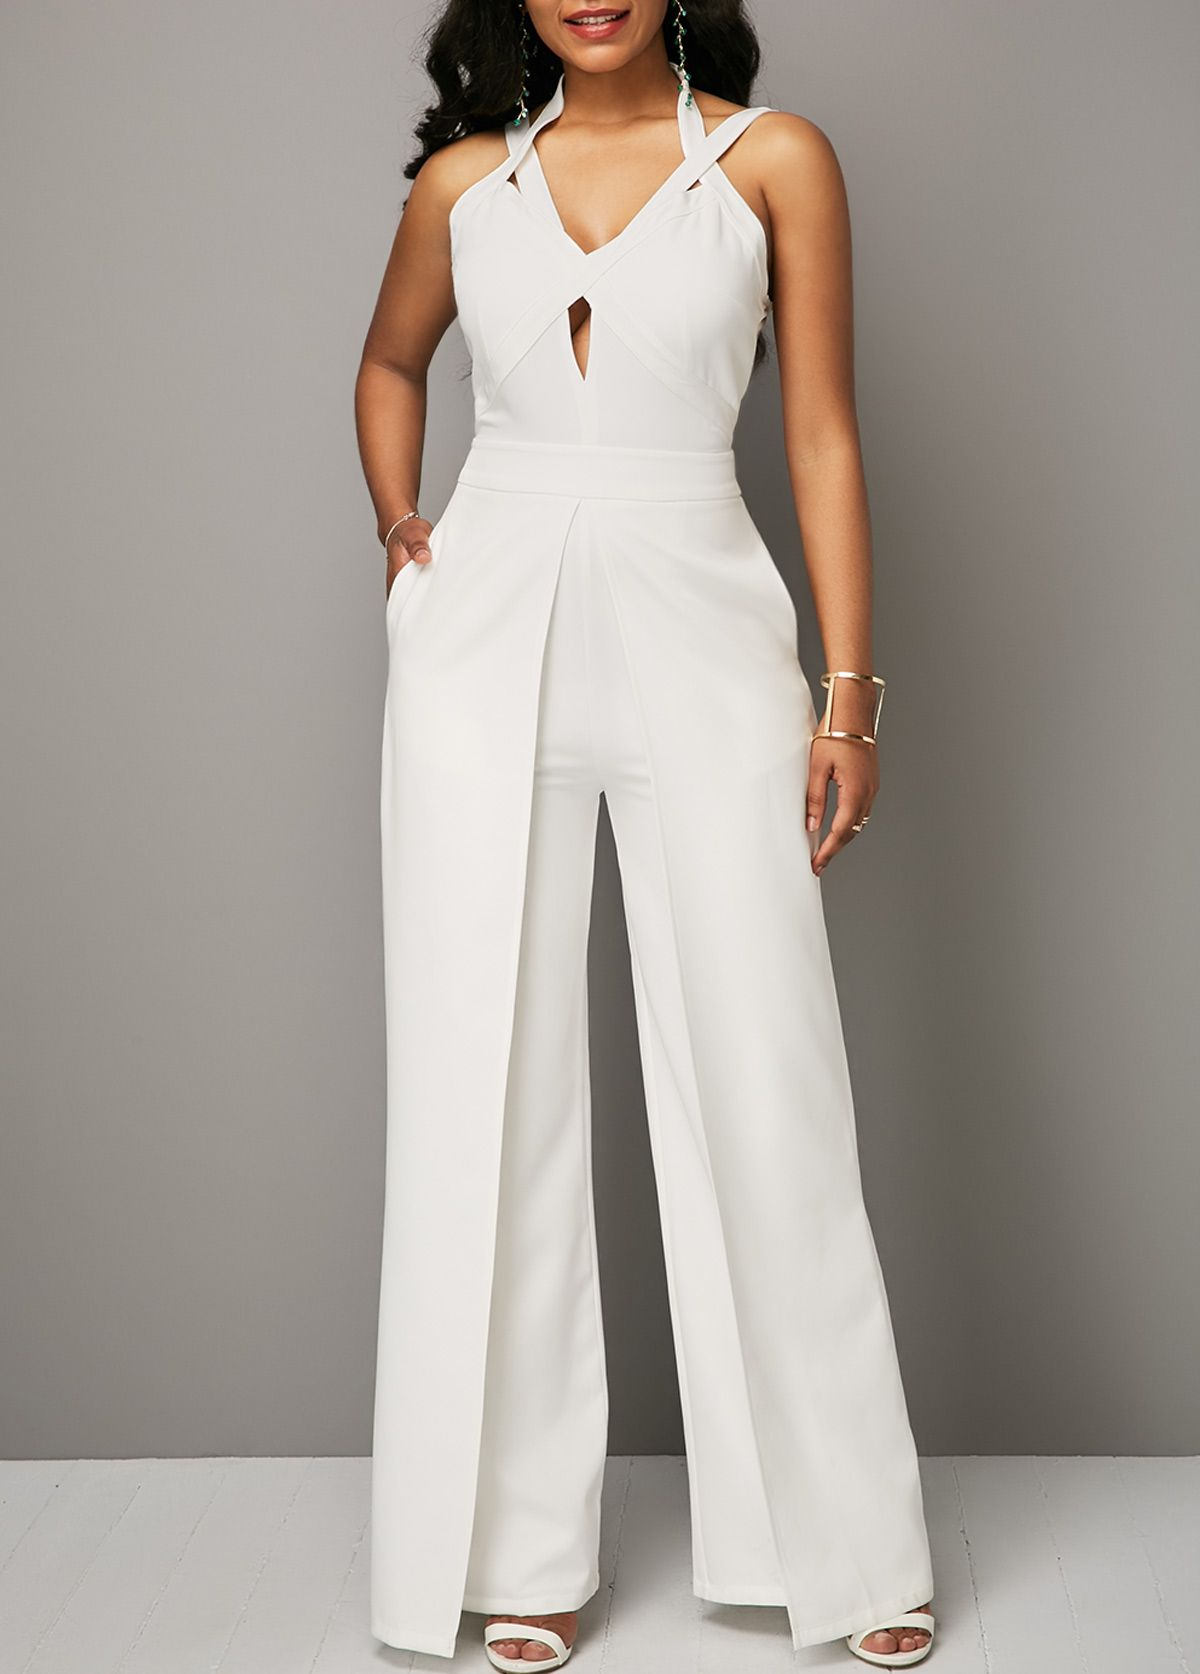 Solid White Overlap Open Back Jumpsuit Jumpers Jump Suits